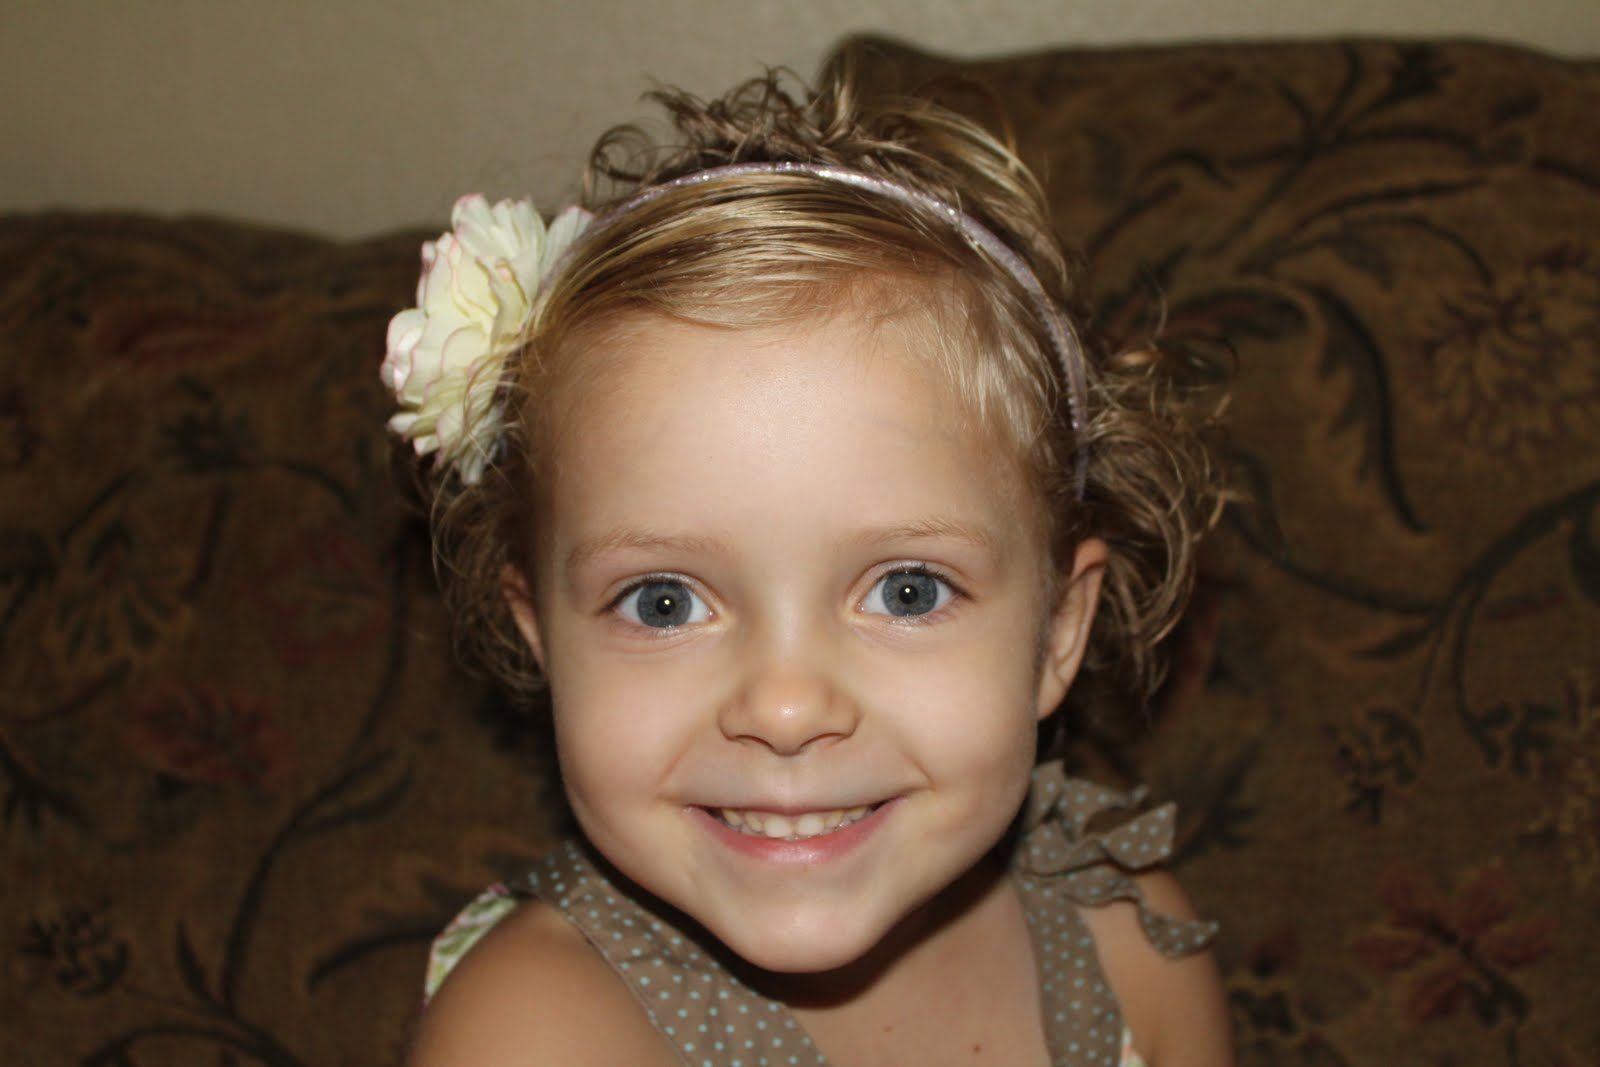 Bluhm Family: My Little Pixie Girl